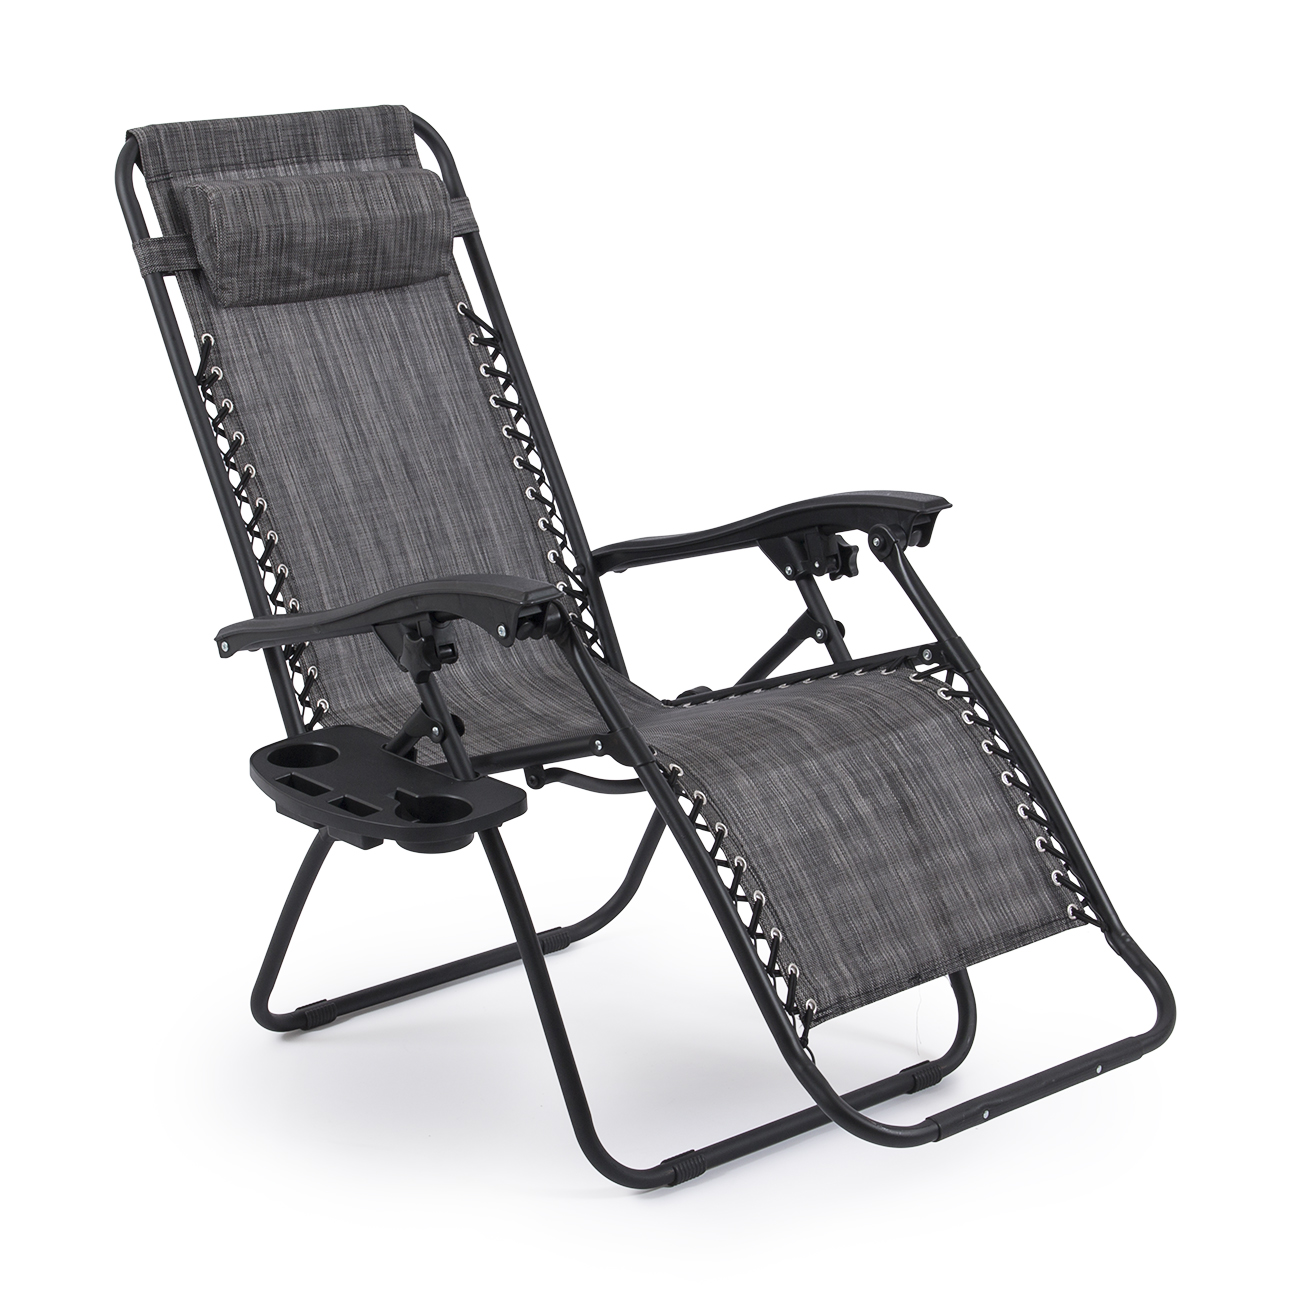 Folding Lounge Chairs 2 Lounge Chair Outdoor Zero Gravity Beach Patio Pool Yard